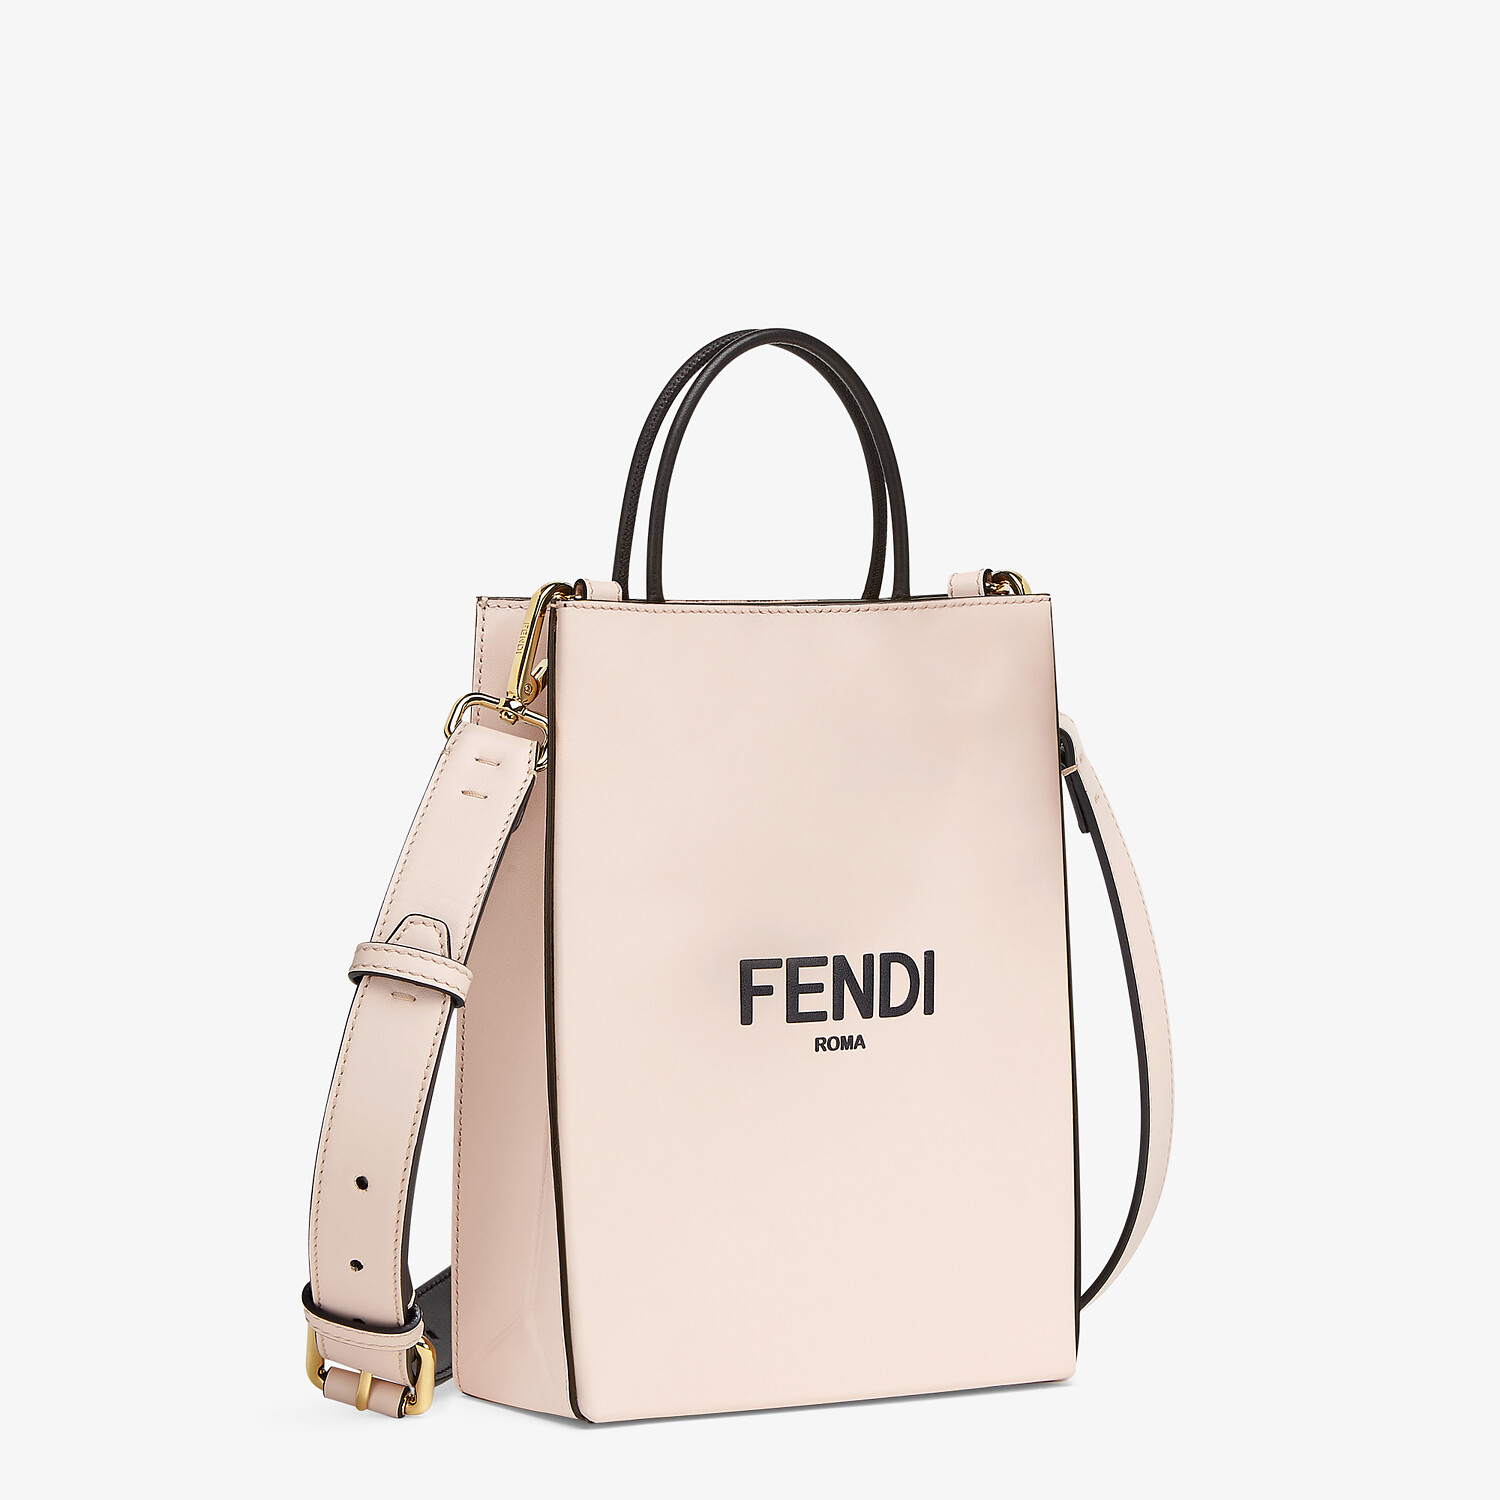 FENDI FENDI PACK SHOPPING BAG SMALL - Borsa in pelle rosa - vista 3 dettaglio